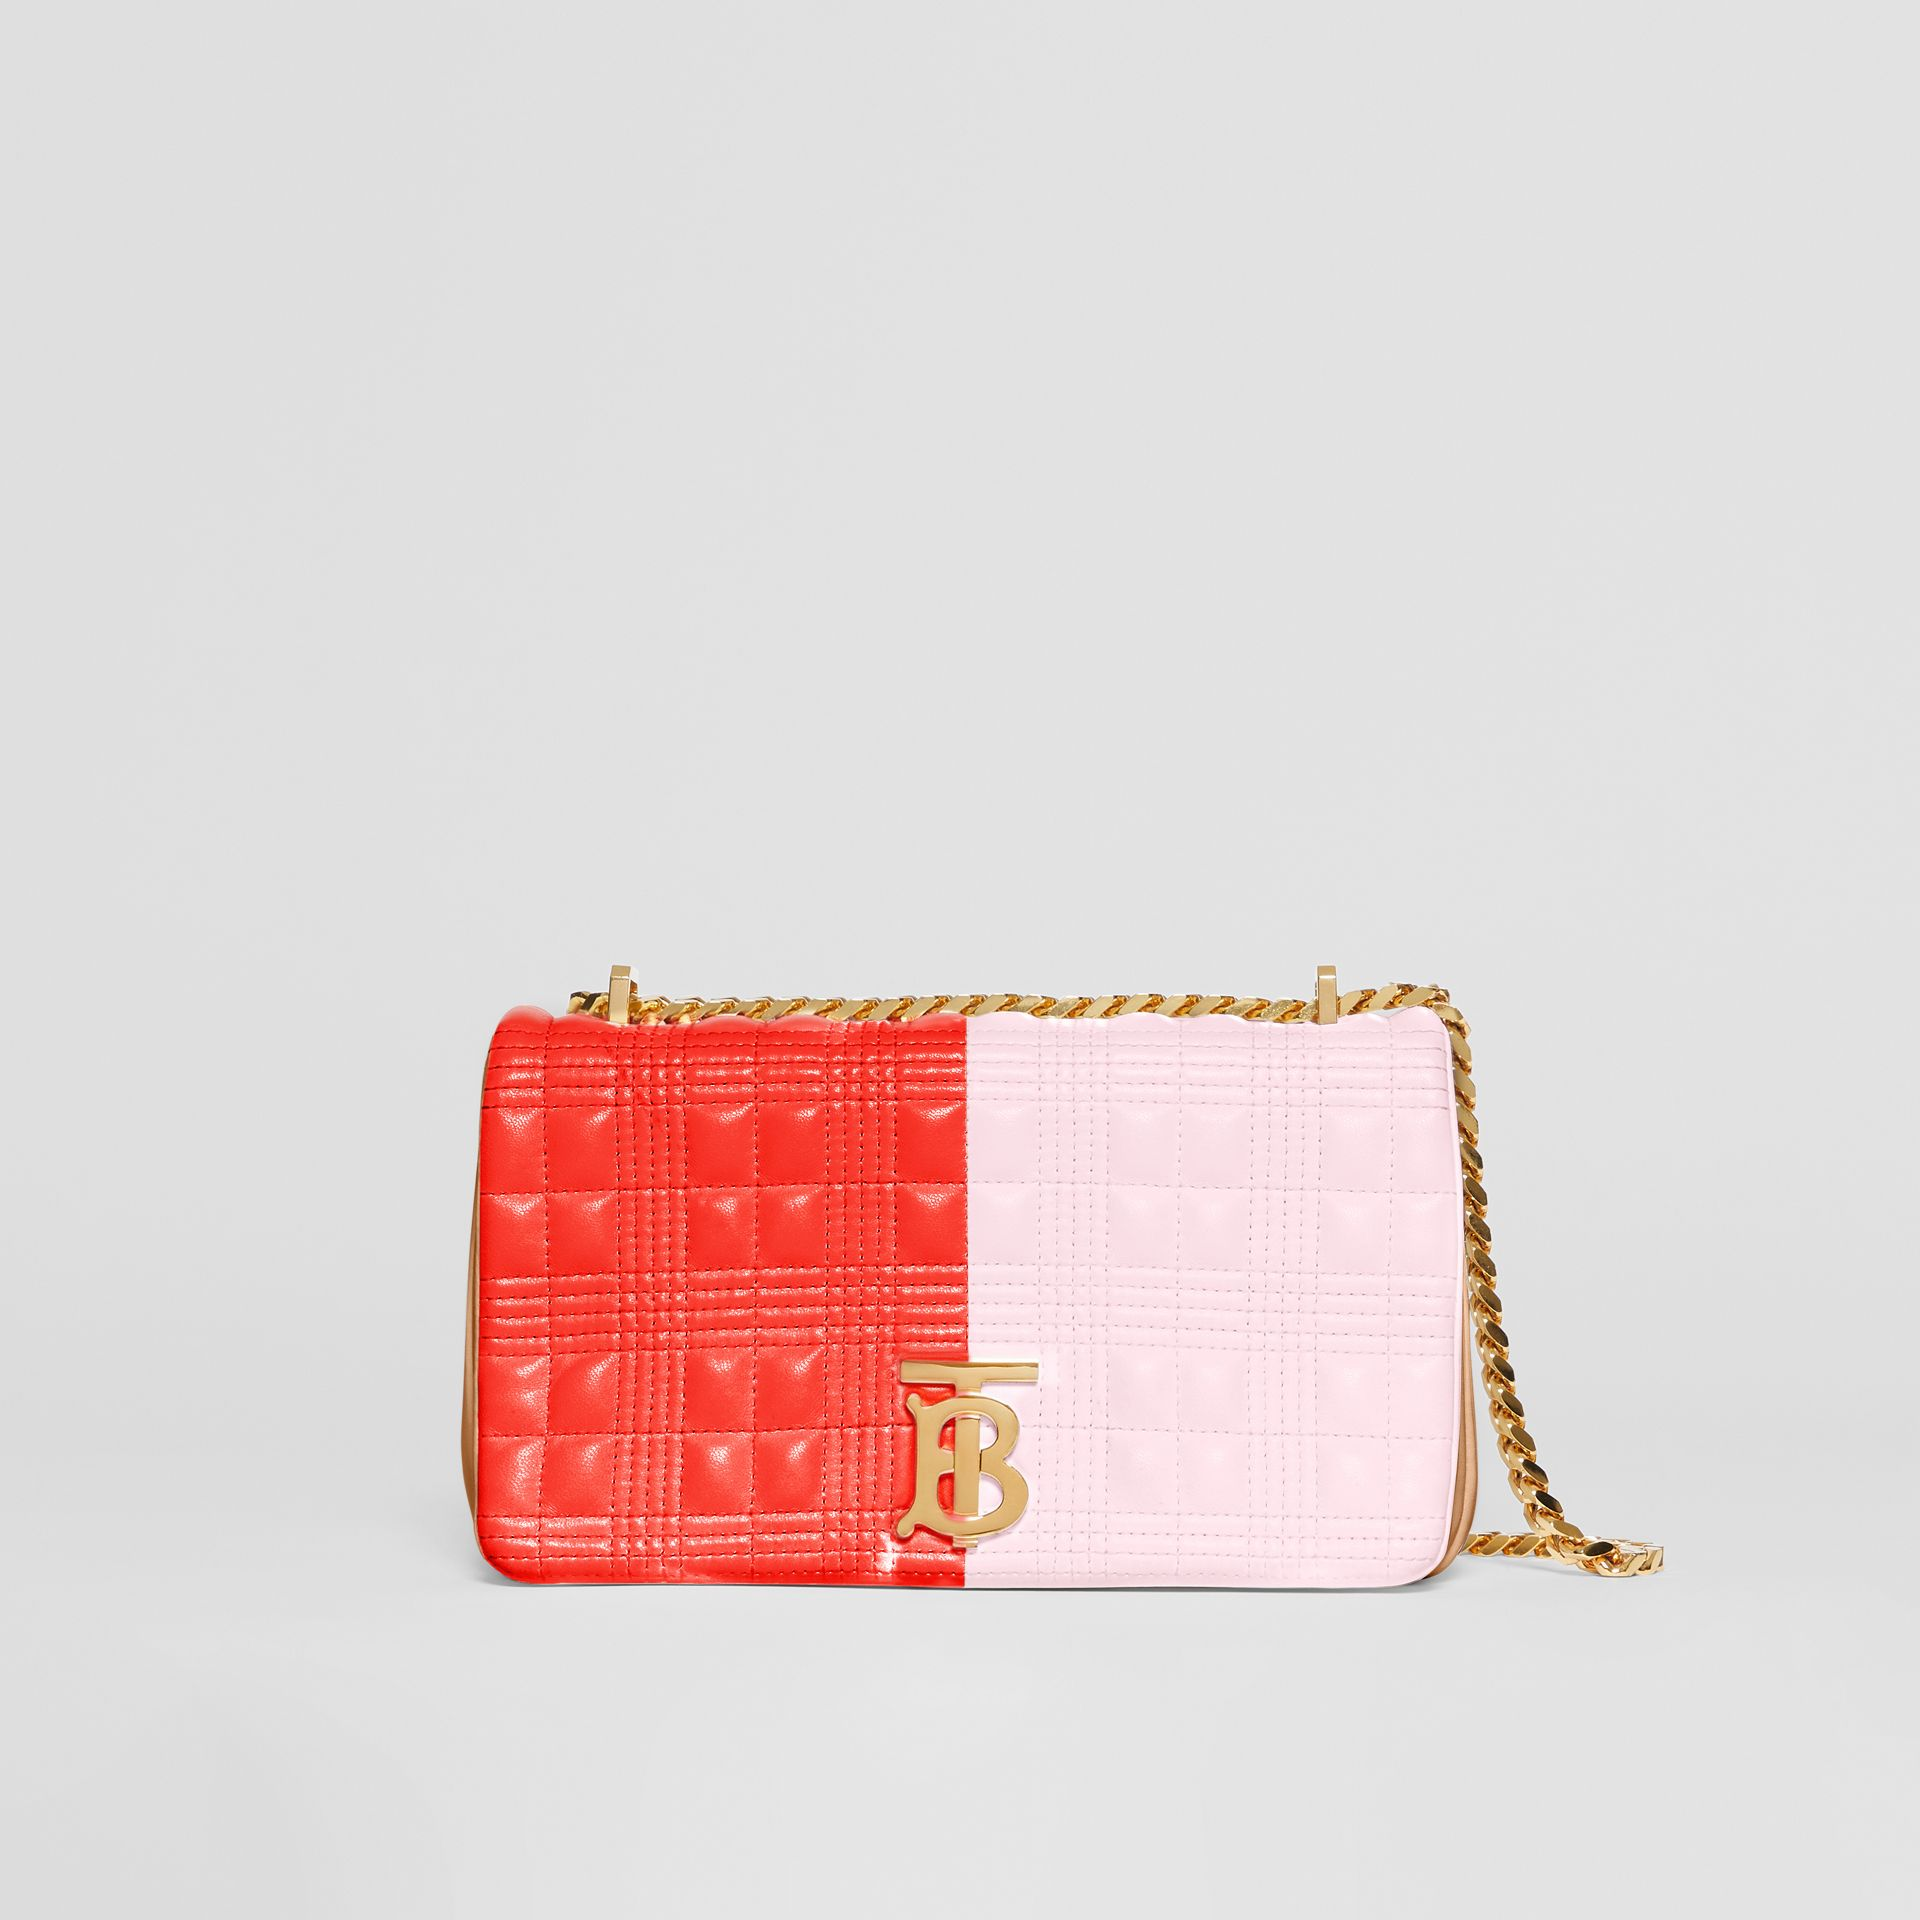 Small Quilted Tri-tone Lambskin Lola Bag in Red/pink/camel - Women | Burberry - gallery image 0